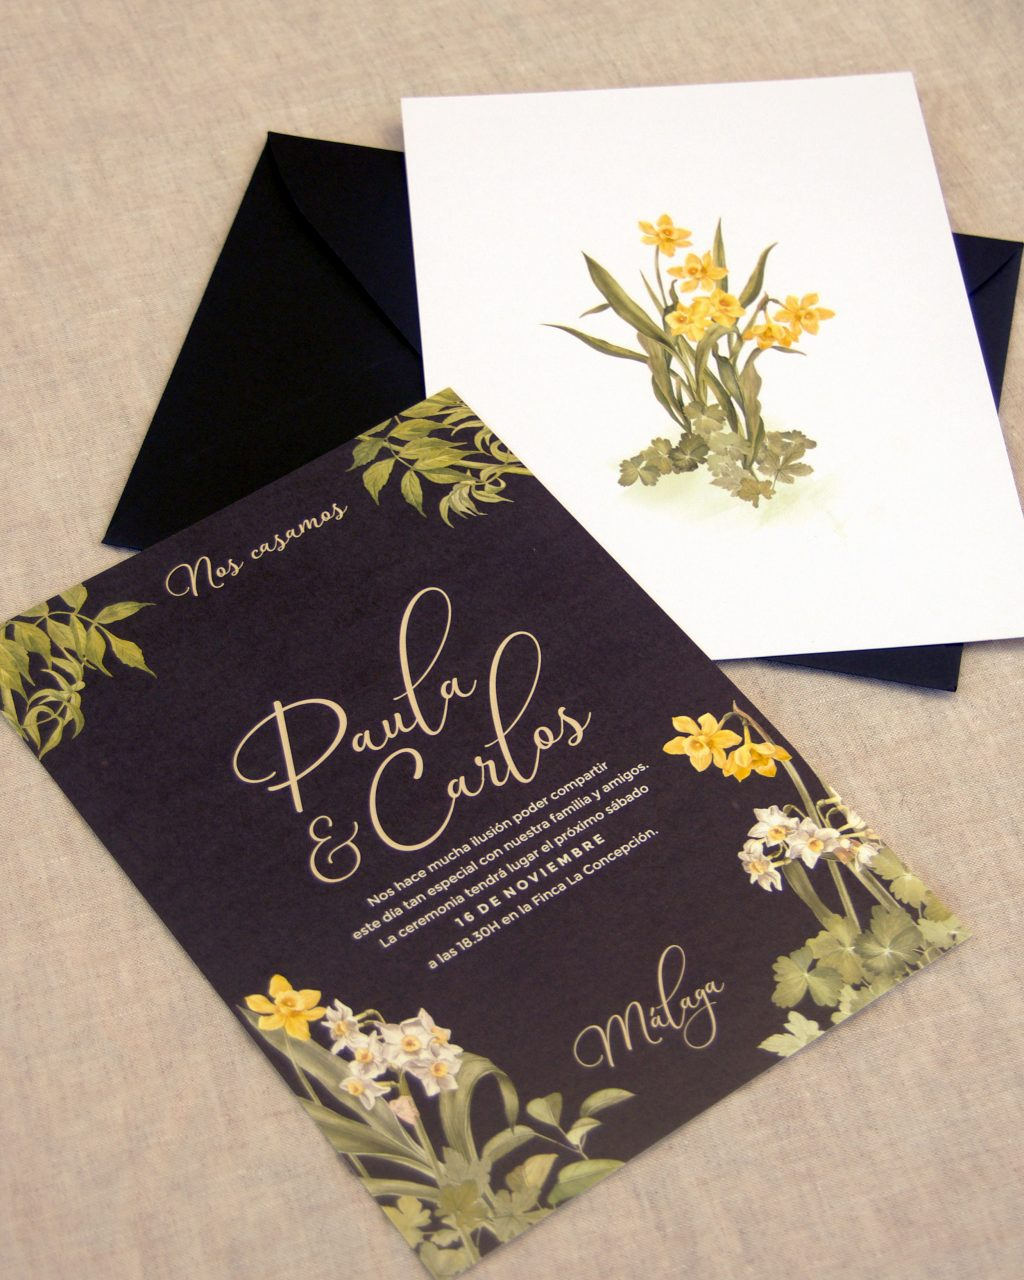 Invitaciones de boda Something Cute 7 - Invitaciones Inspiradas en la Naturaleza